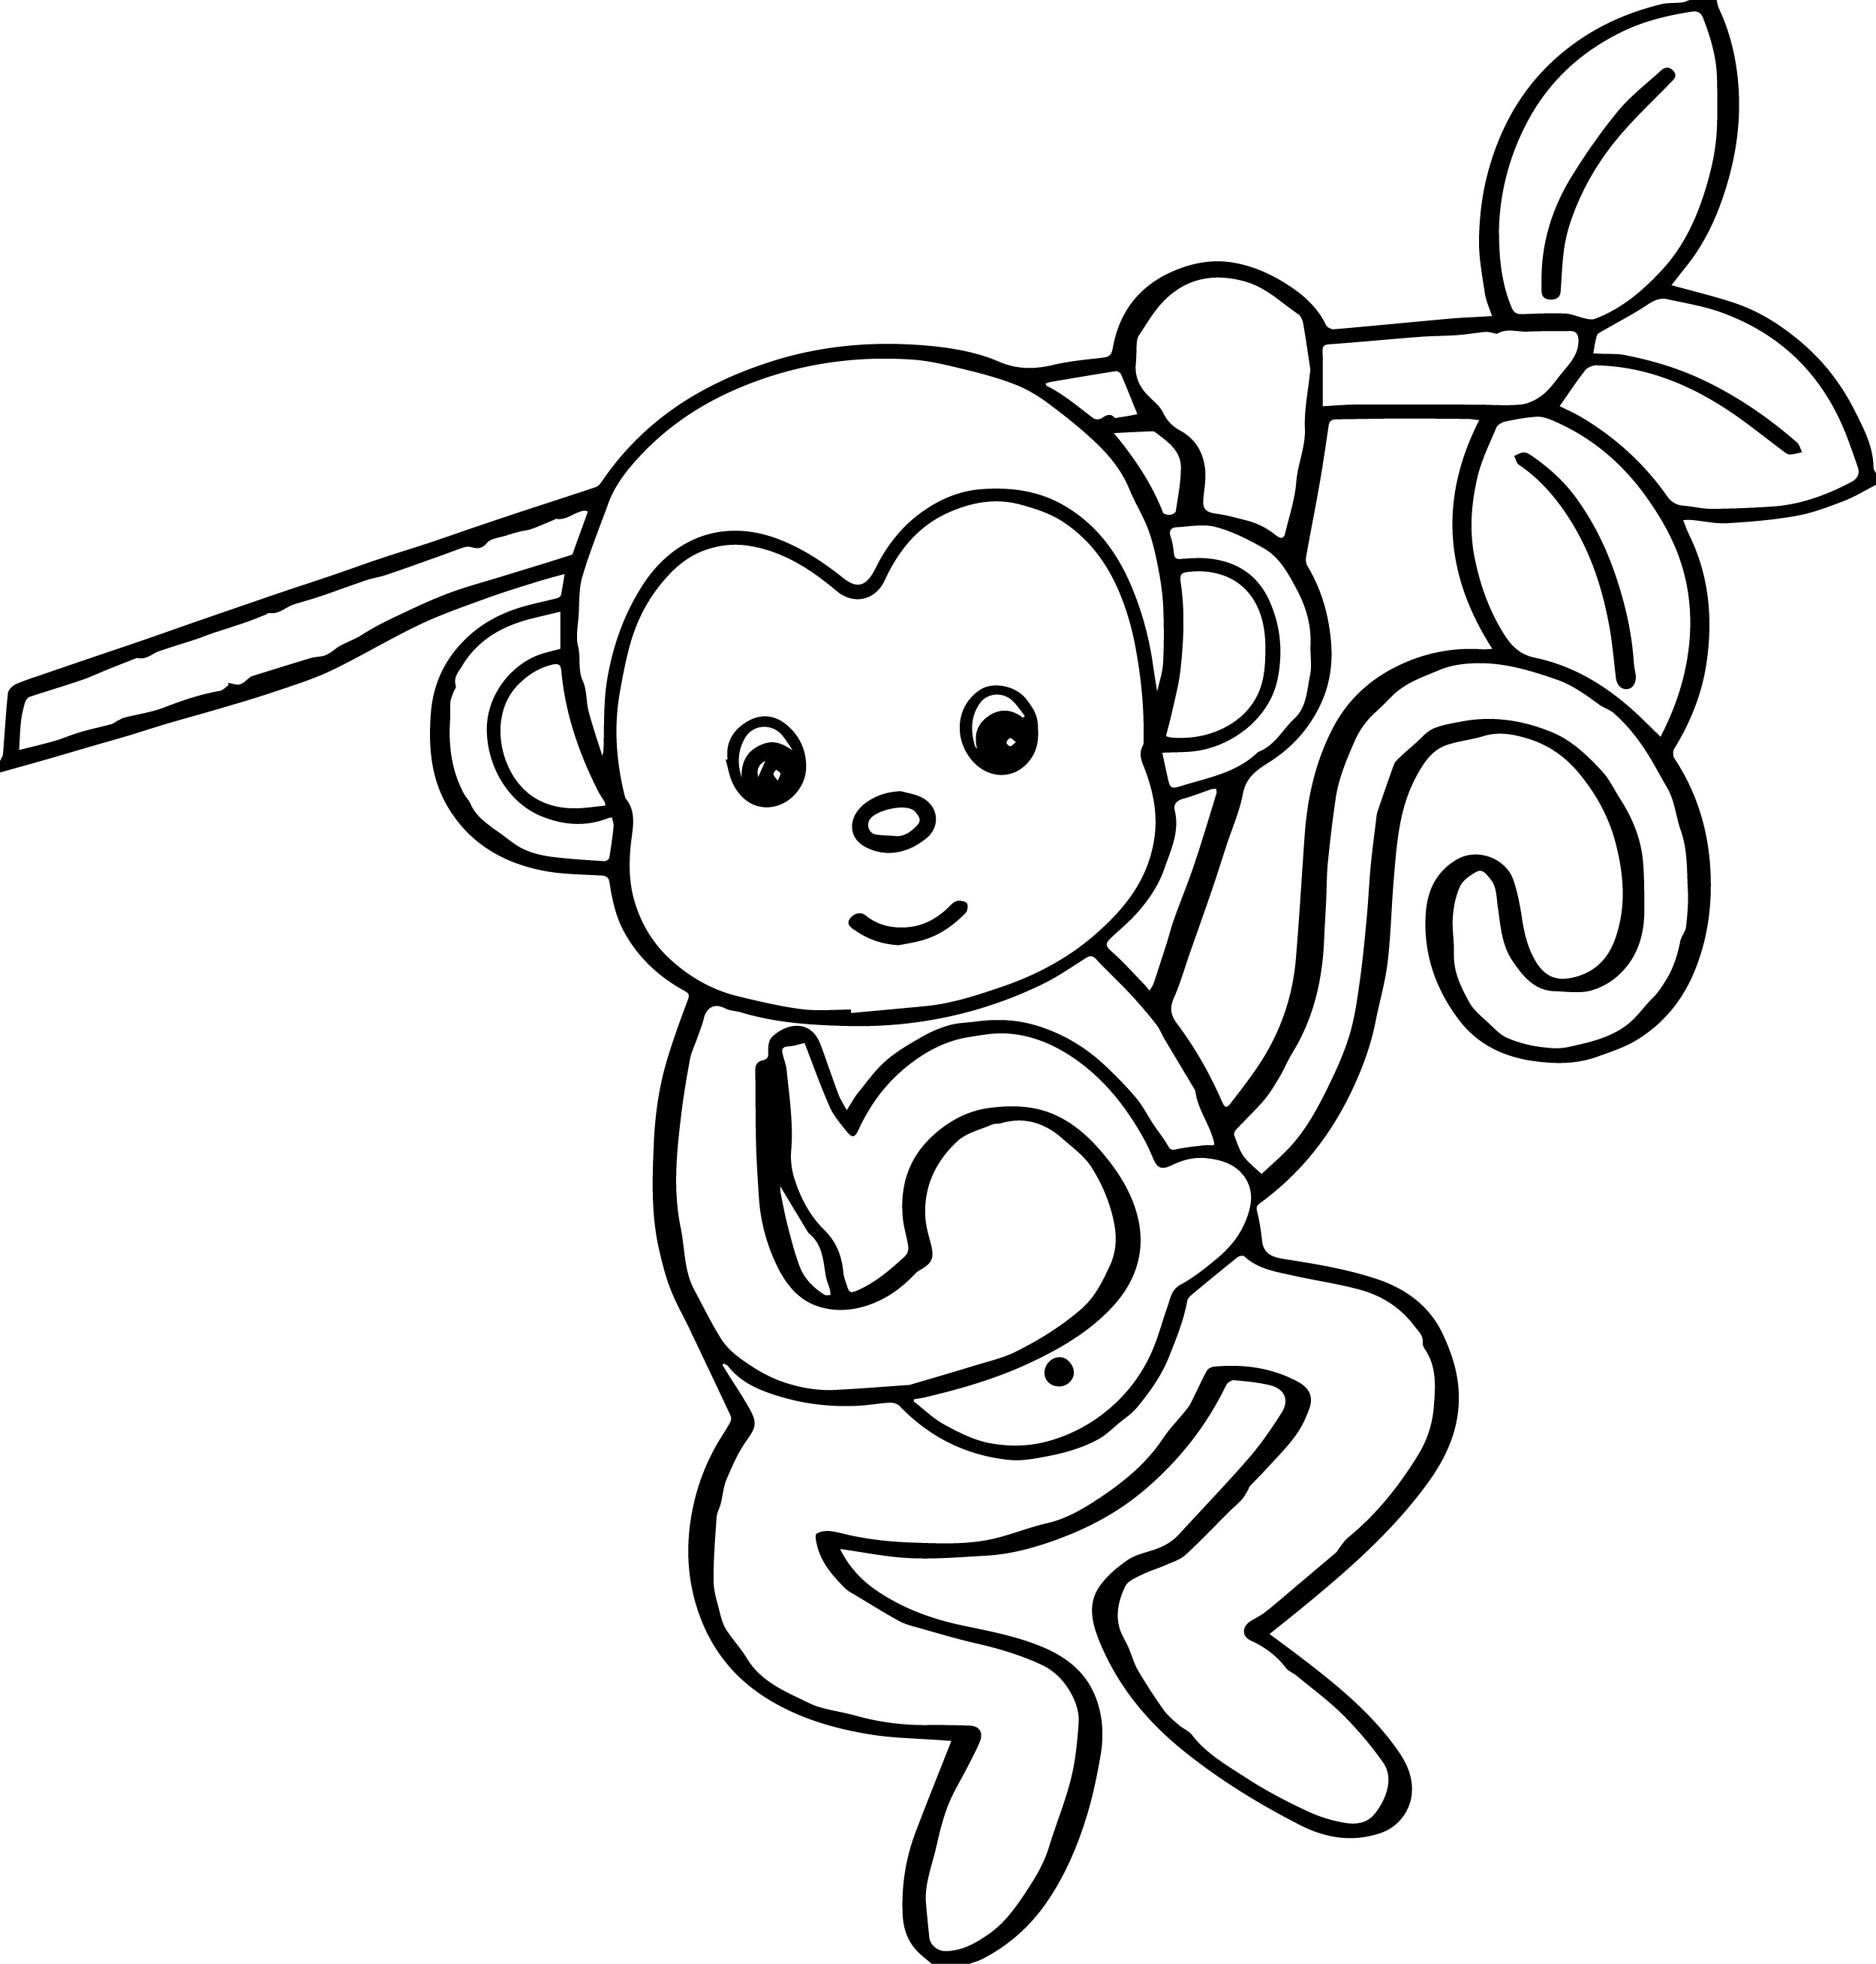 2500x2617 Crafty Design Monkey Coloring Pages For Adults Toddlers Chinese